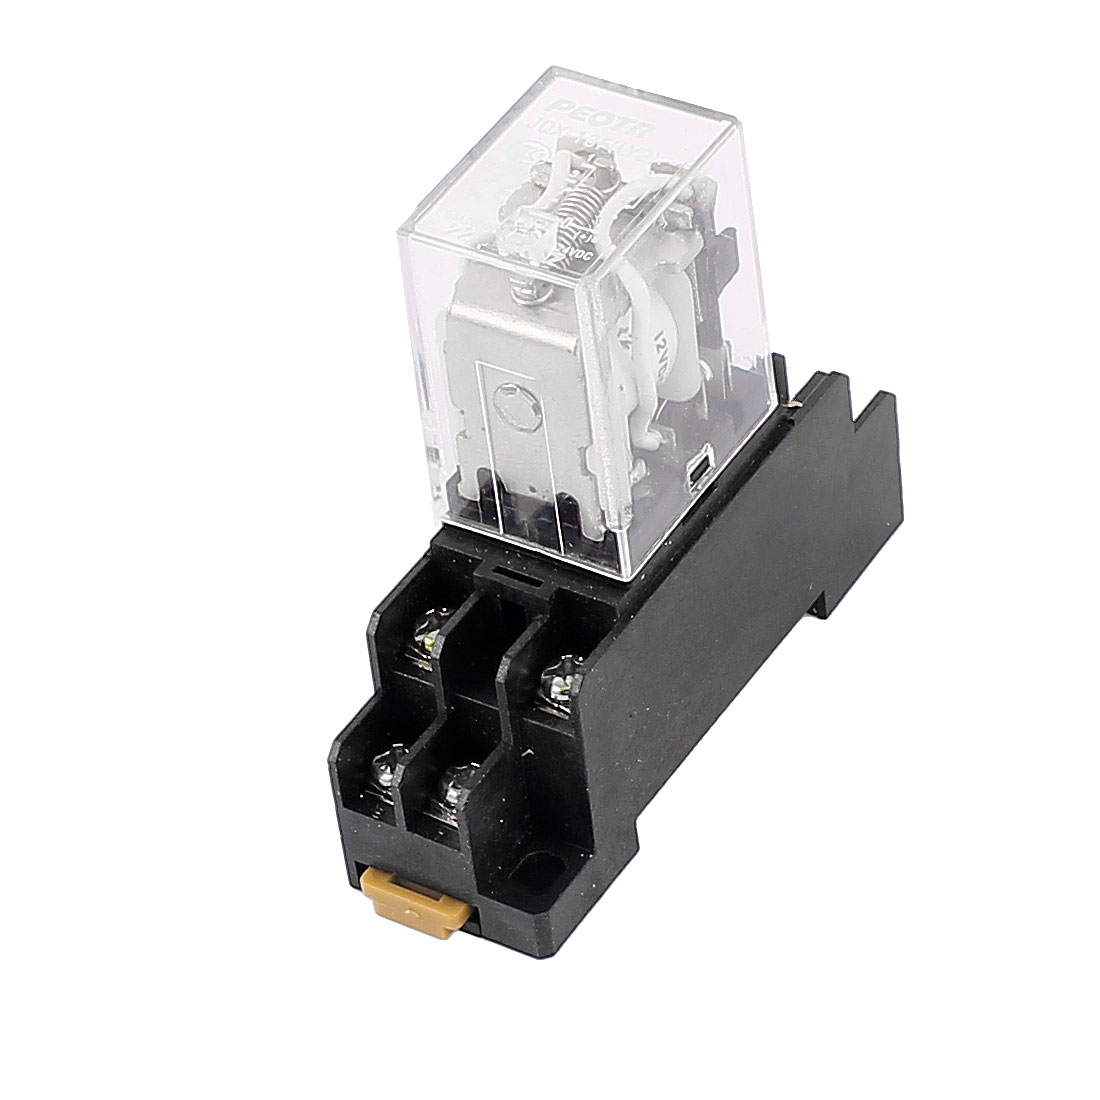 JQX-13F DC 12V Coil 8 Terminal DPDT Power Electromagnetic Relay w Socket Base